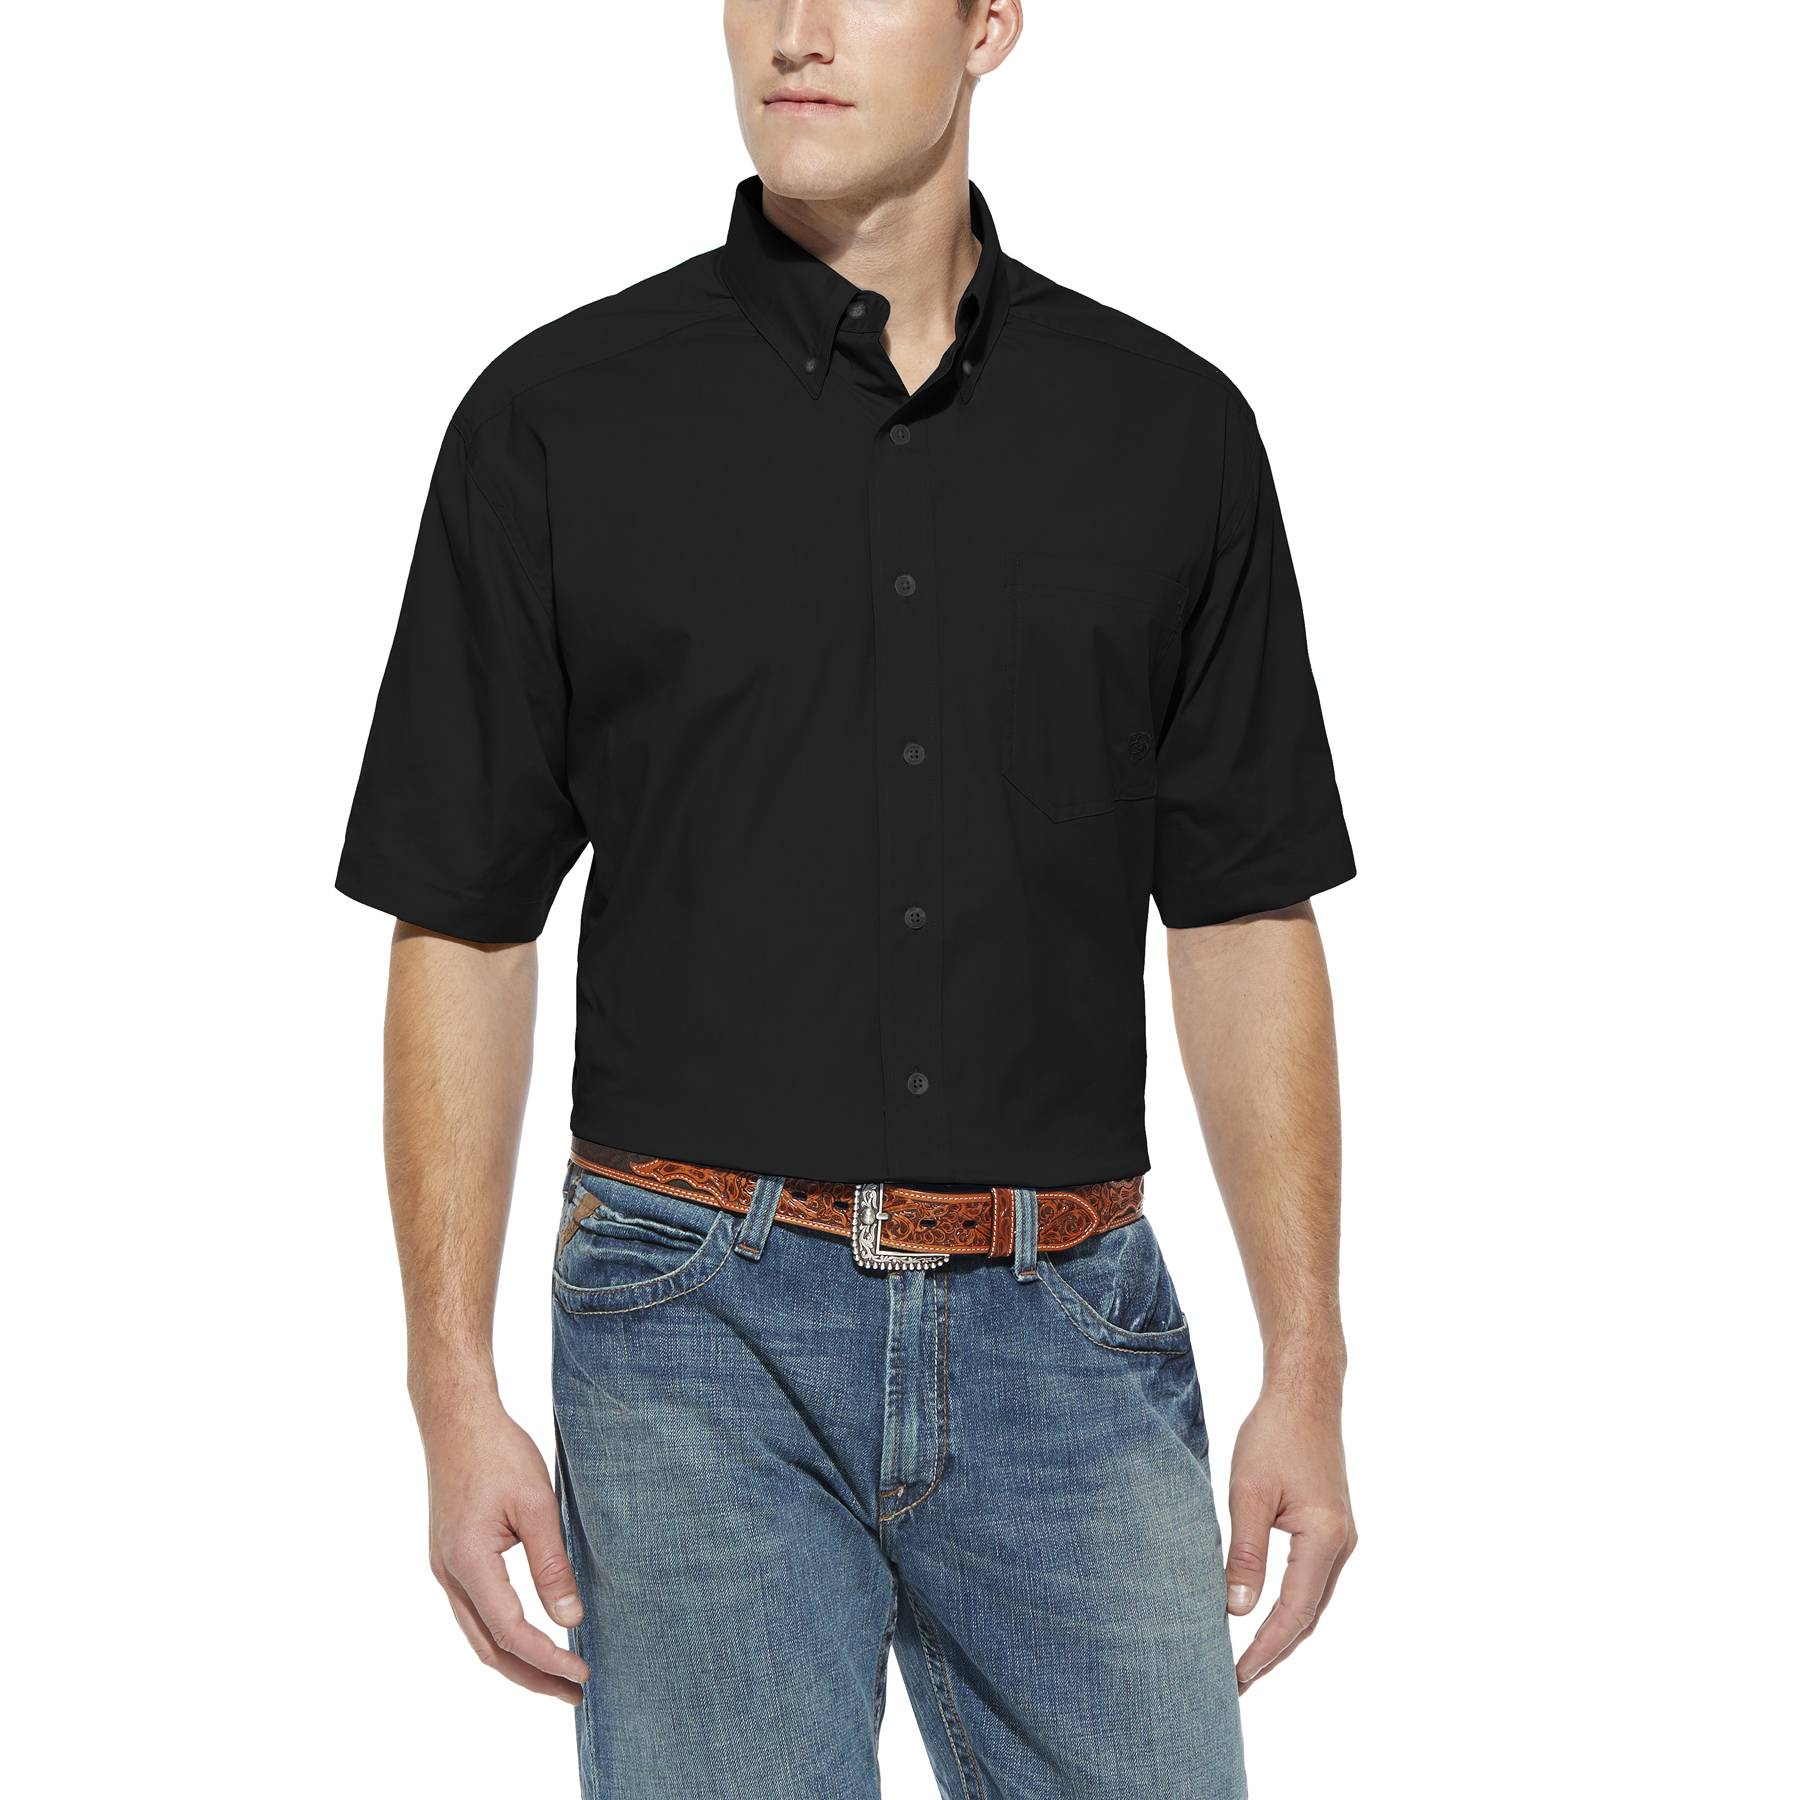 Ariat Men's Solid Poplin Short Sleeve Shirt - Black